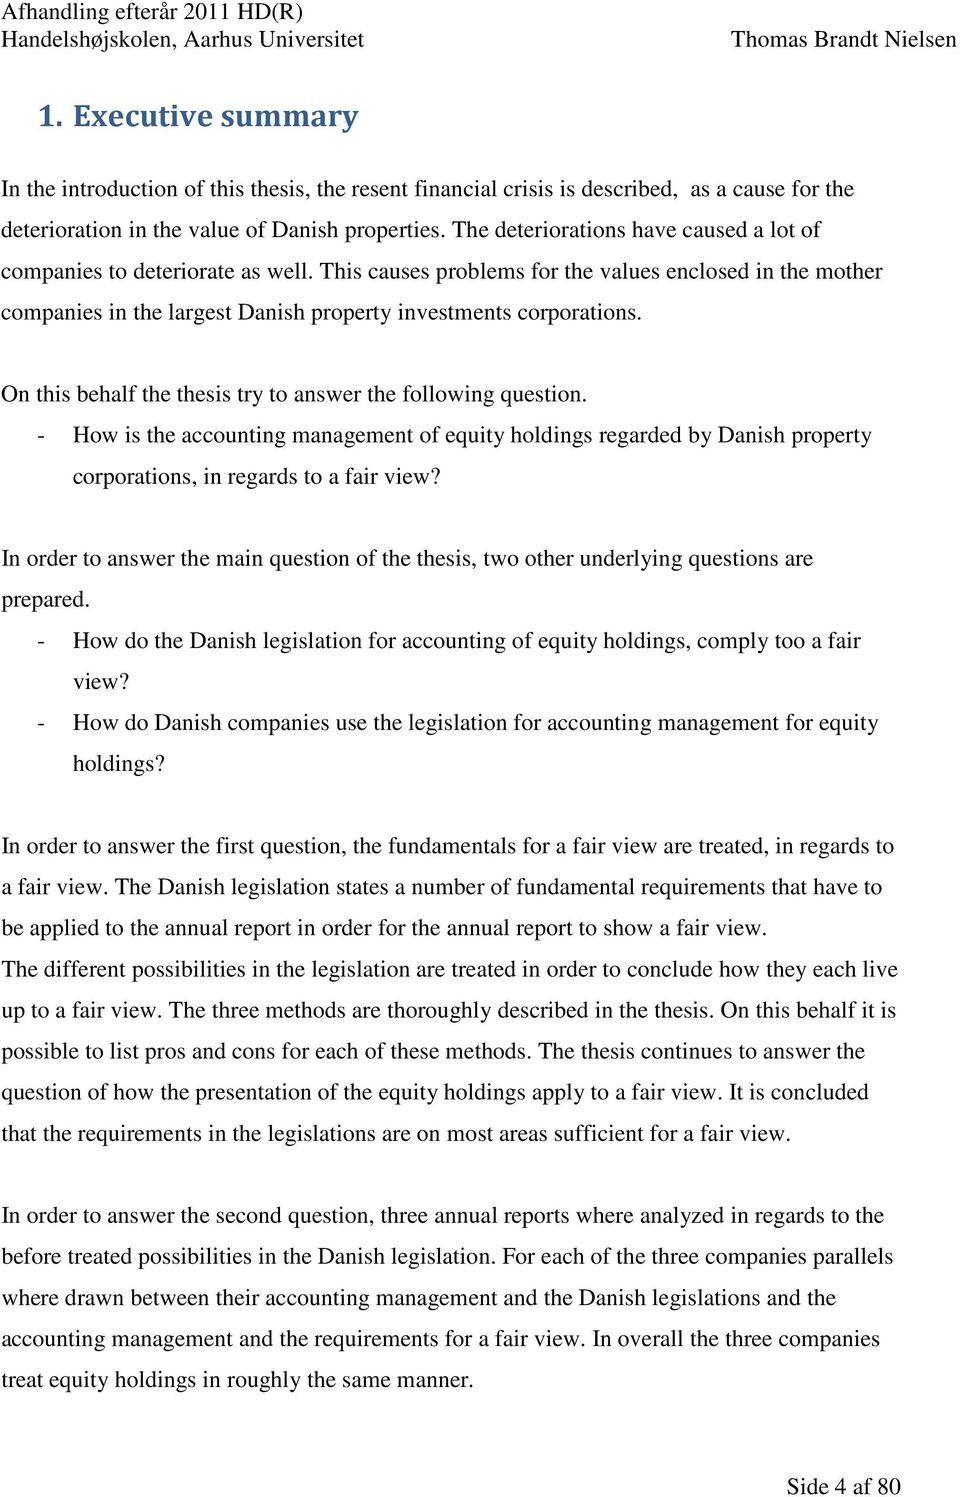 On this behalf the thesis try to answer the following question. - How is the accounting management of equity holdings regarded by Danish property corporations, in regards to a fair view?